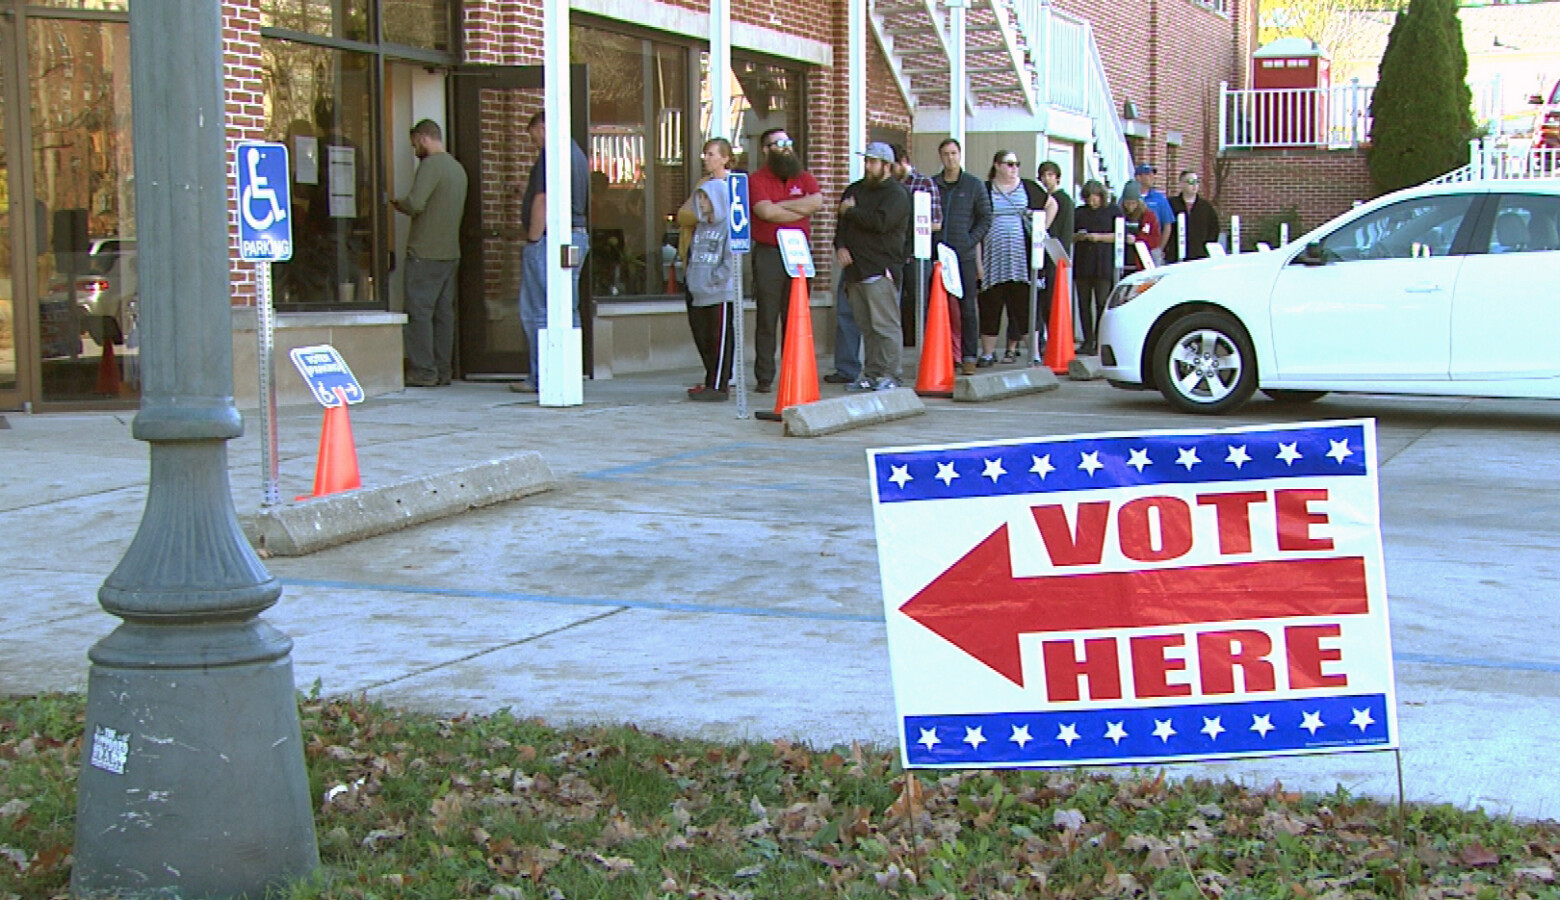 A 2019 Indiana law says only county election boards – by unanimous vote – can go to court to request extended polling hours on Election Day. (FILE PHOTO: Steve Burns/WTIU)